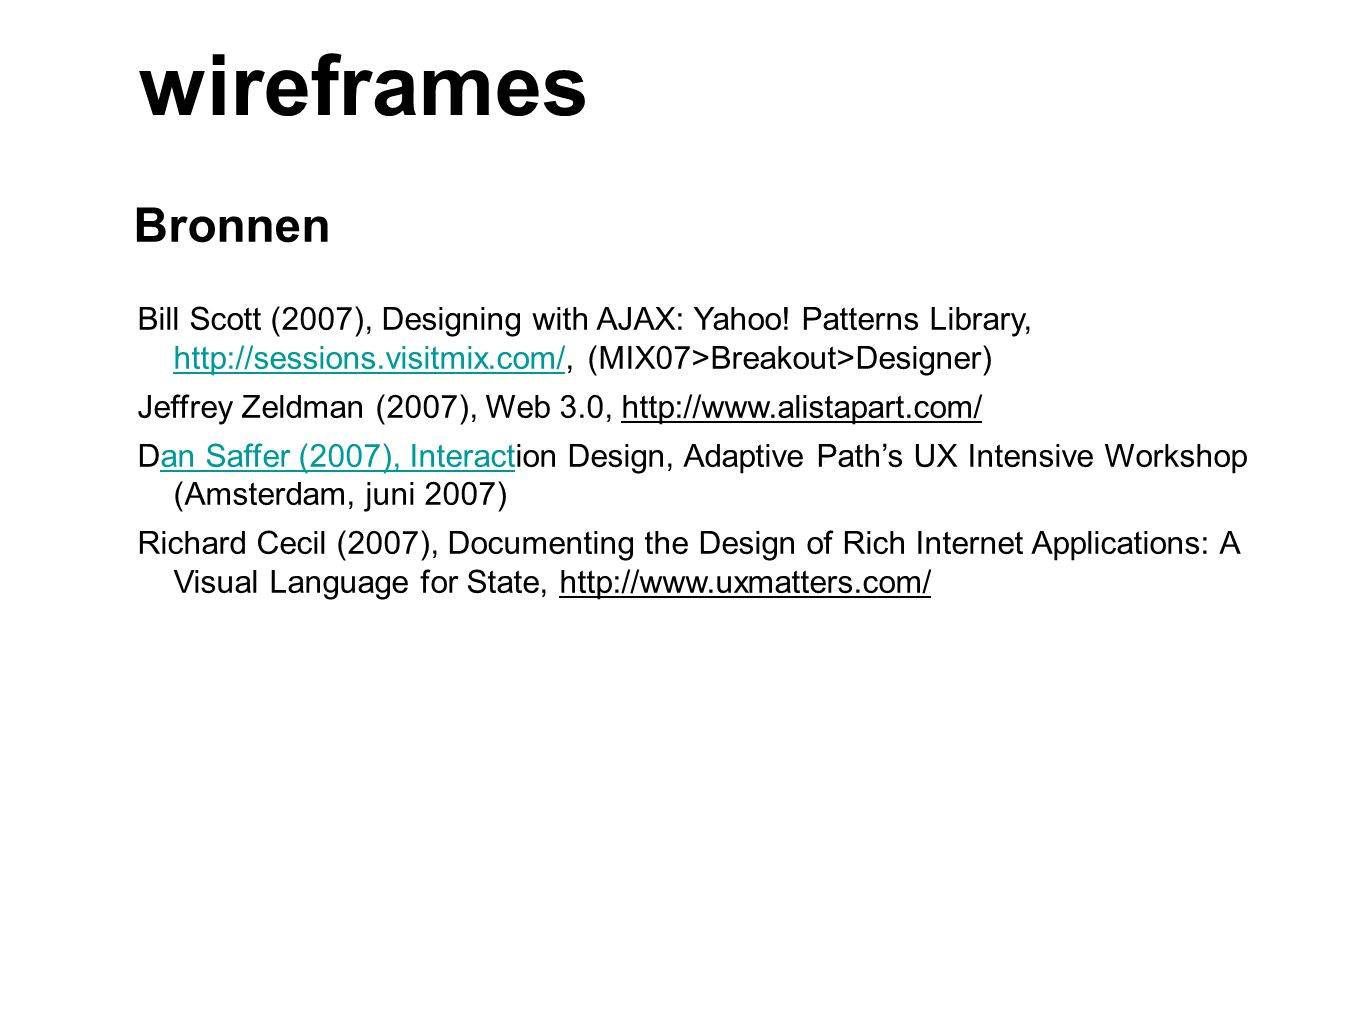 wireframes Bronnen. Bill Scott (2007), Designing with AJAX: Yahoo! Patterns Library, http://sessions.visitmix.com/, (MIX07>Breakout>Designer)